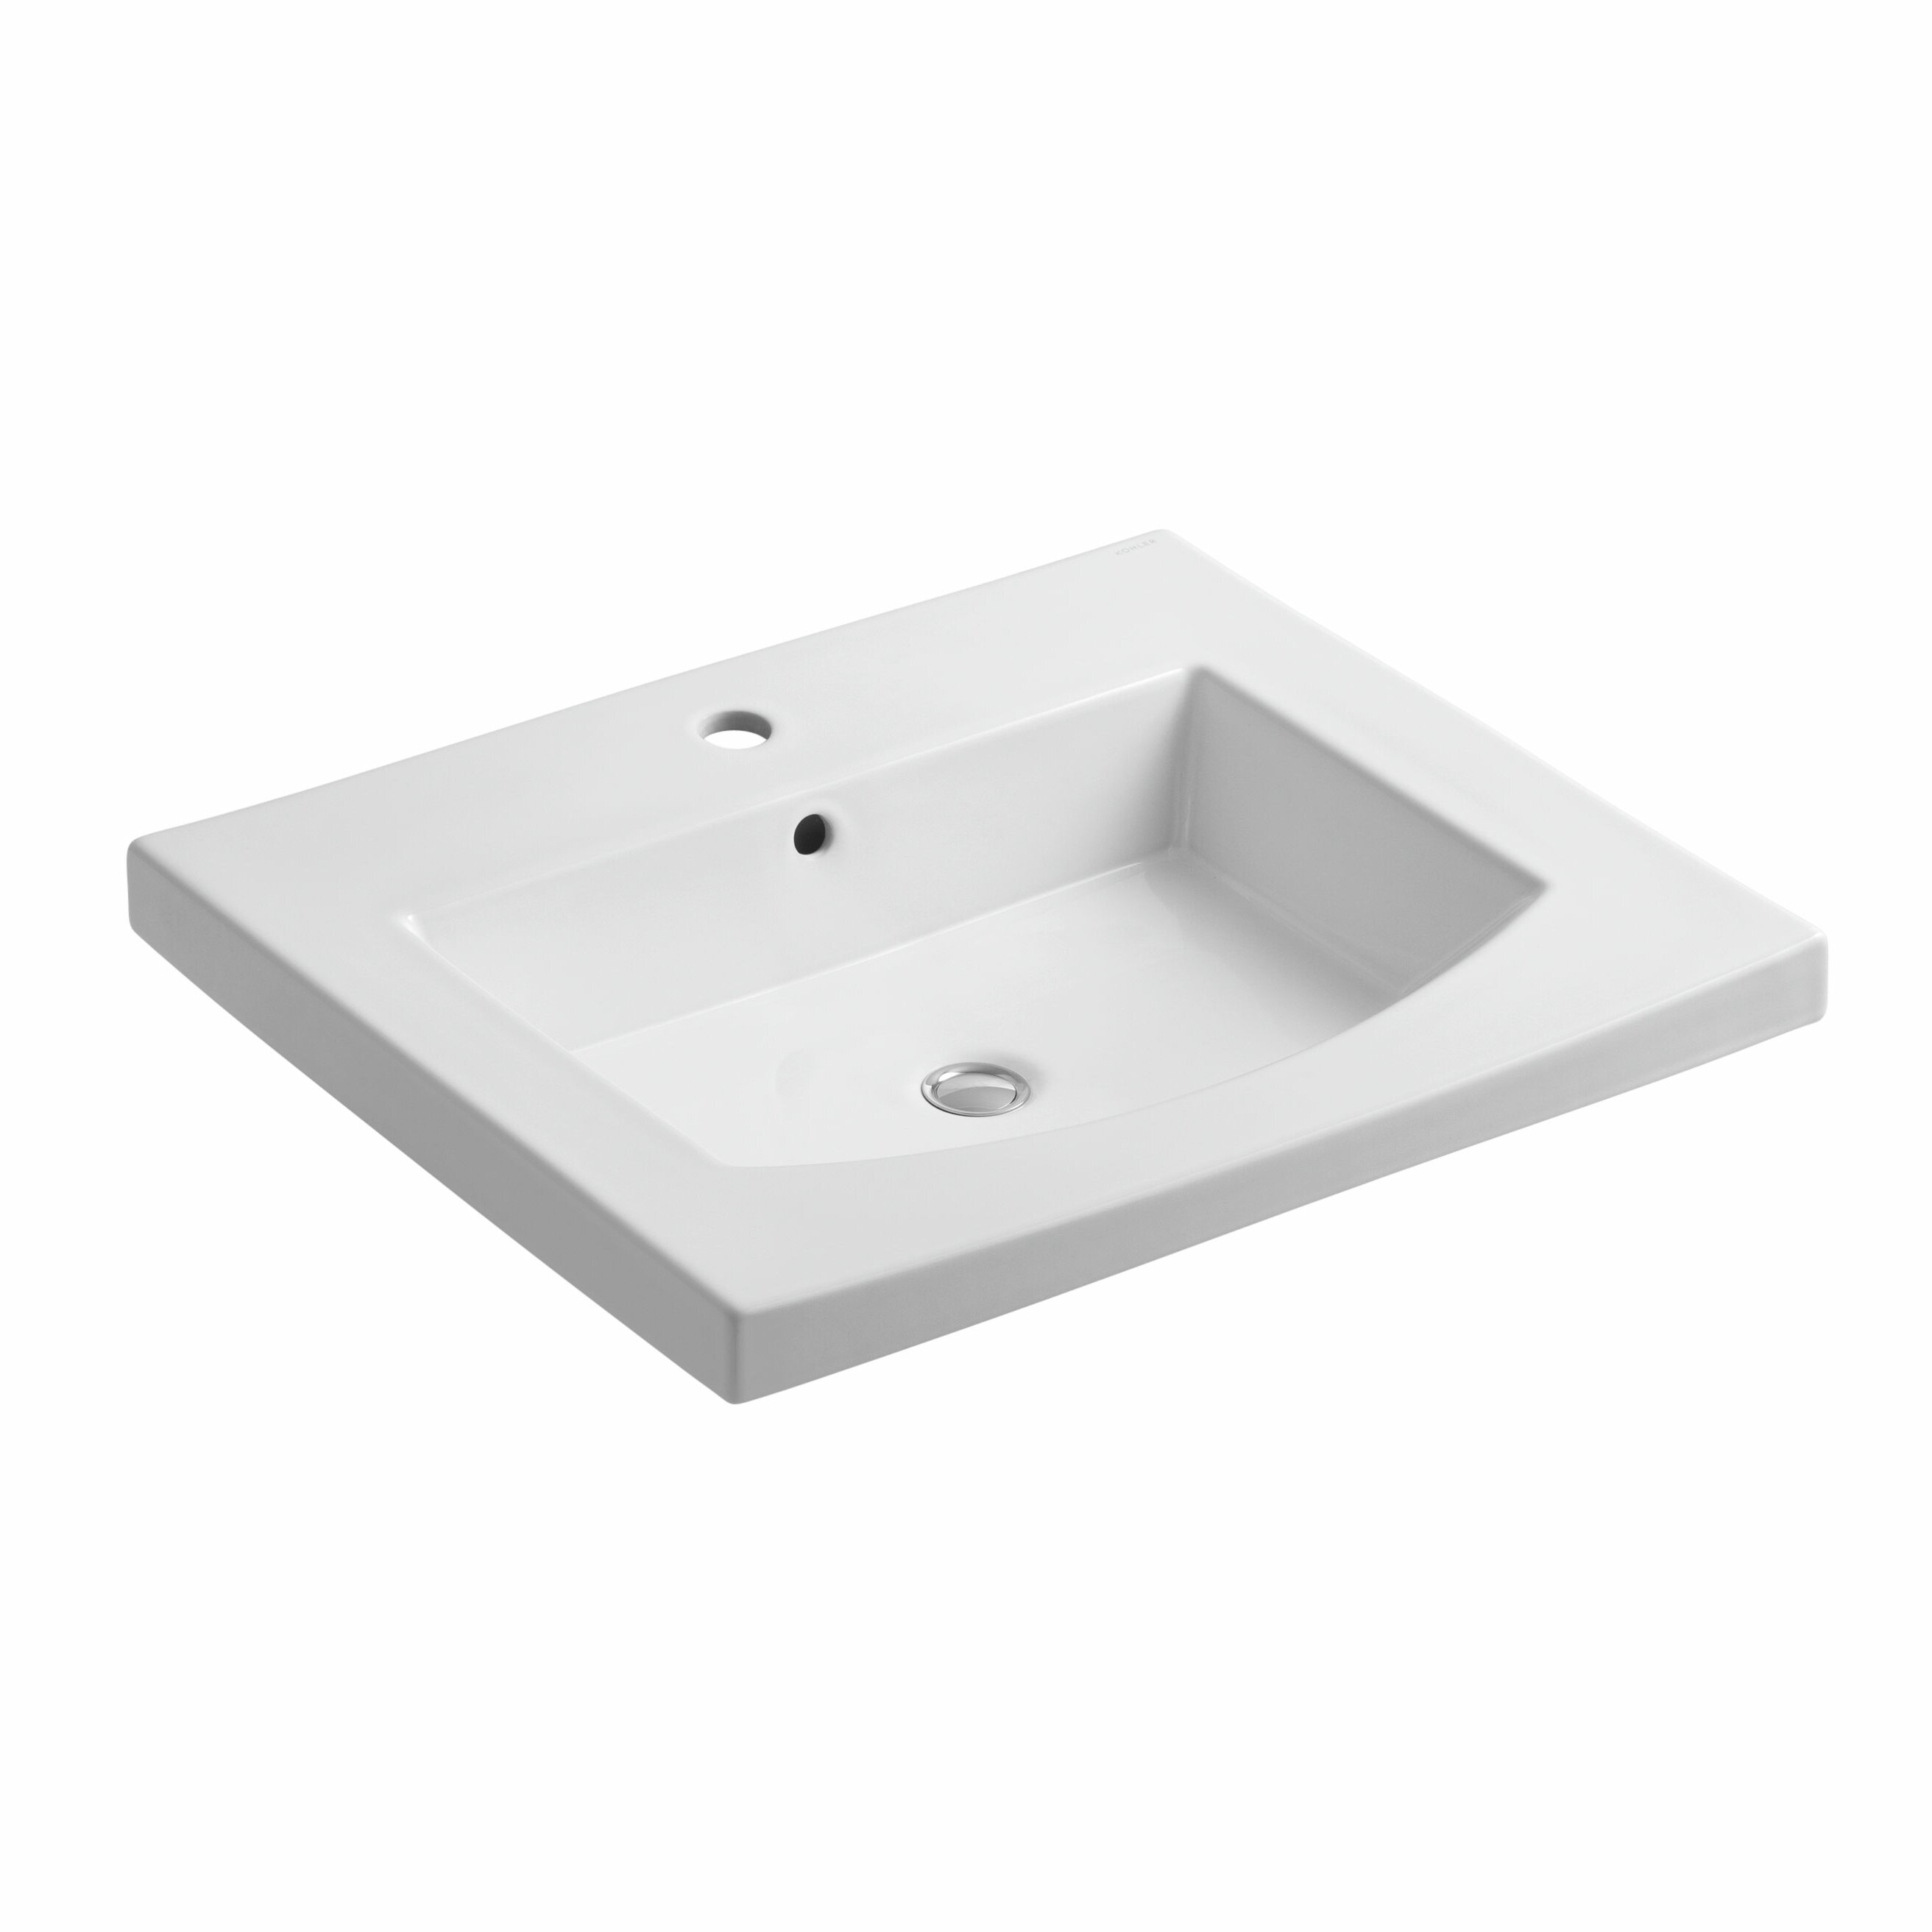 Kohler Persuade Vanity-Top Bathroom Sink with Single Faucet Hole ...